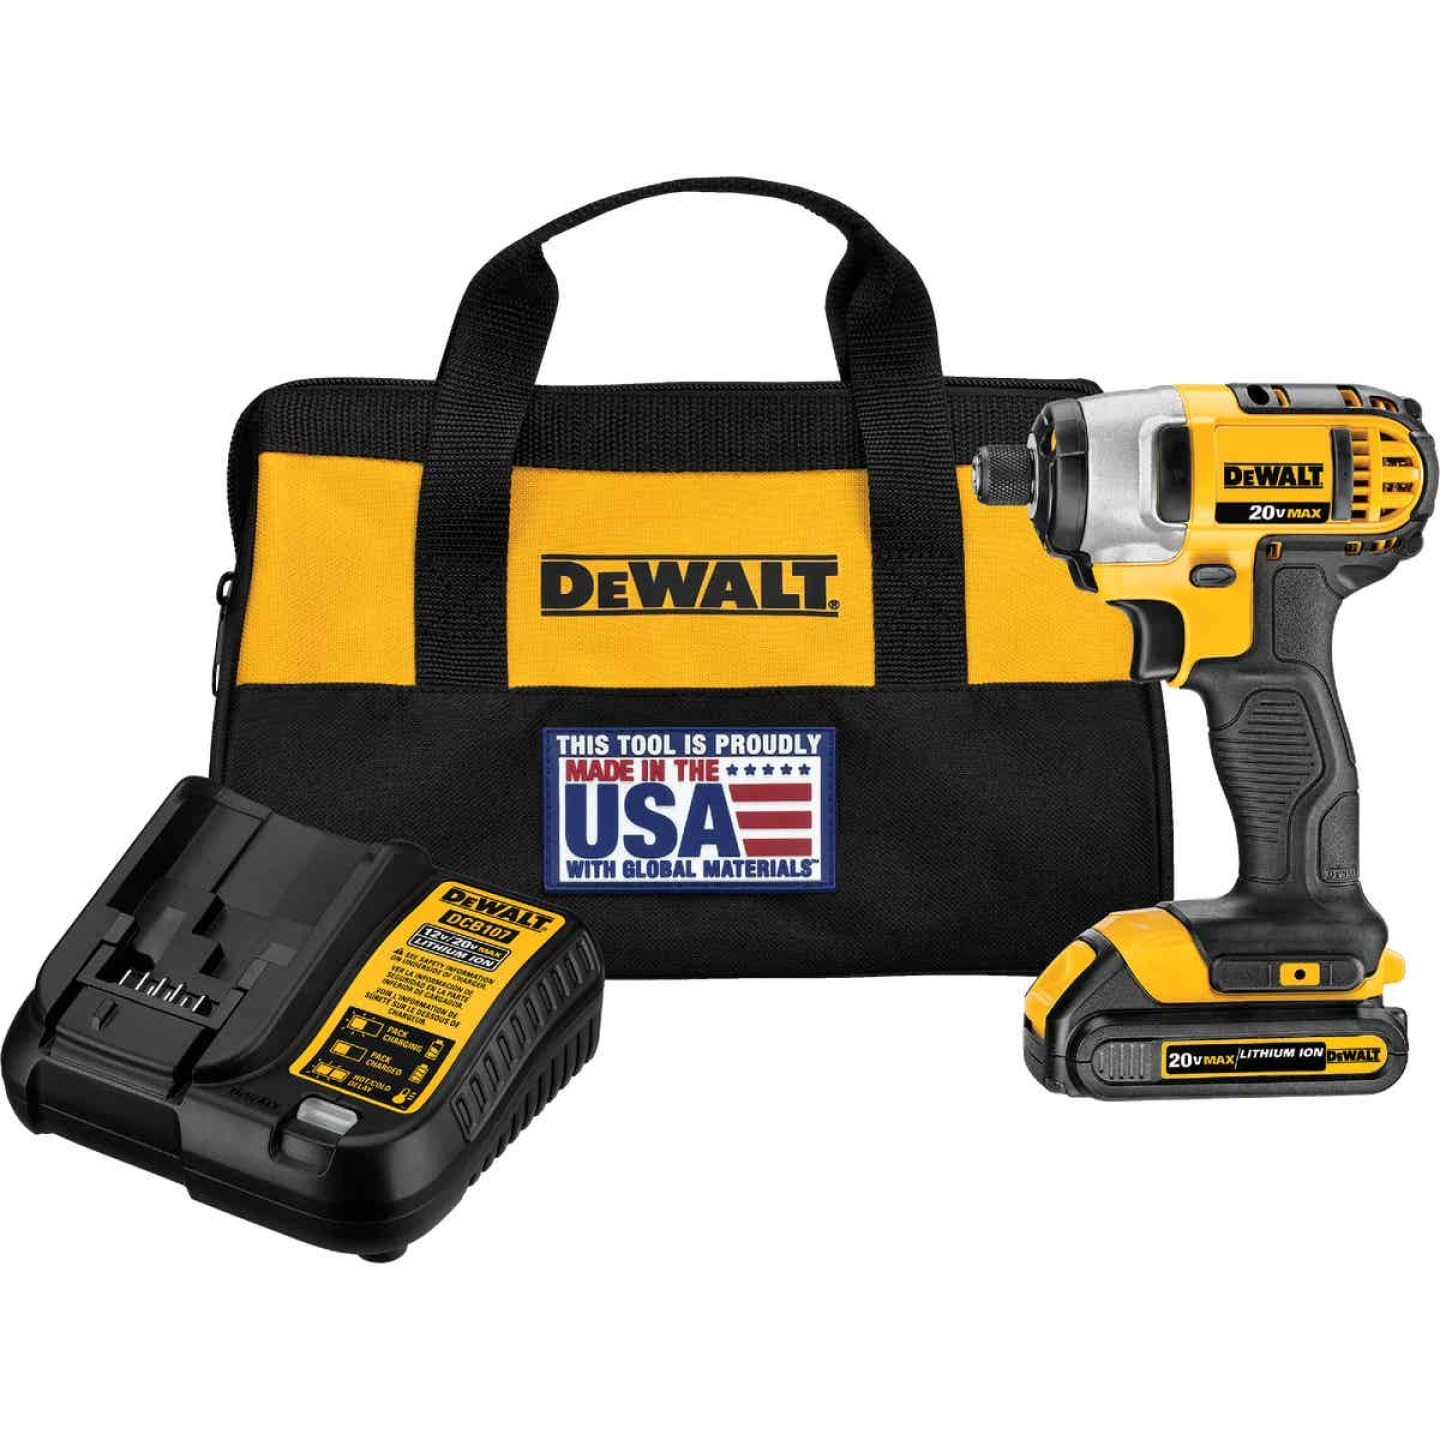 DeWalt 20 Volt MAX Lithium-Ion 1/4 In. Hex Cordless Impact Driver Kit Image 1